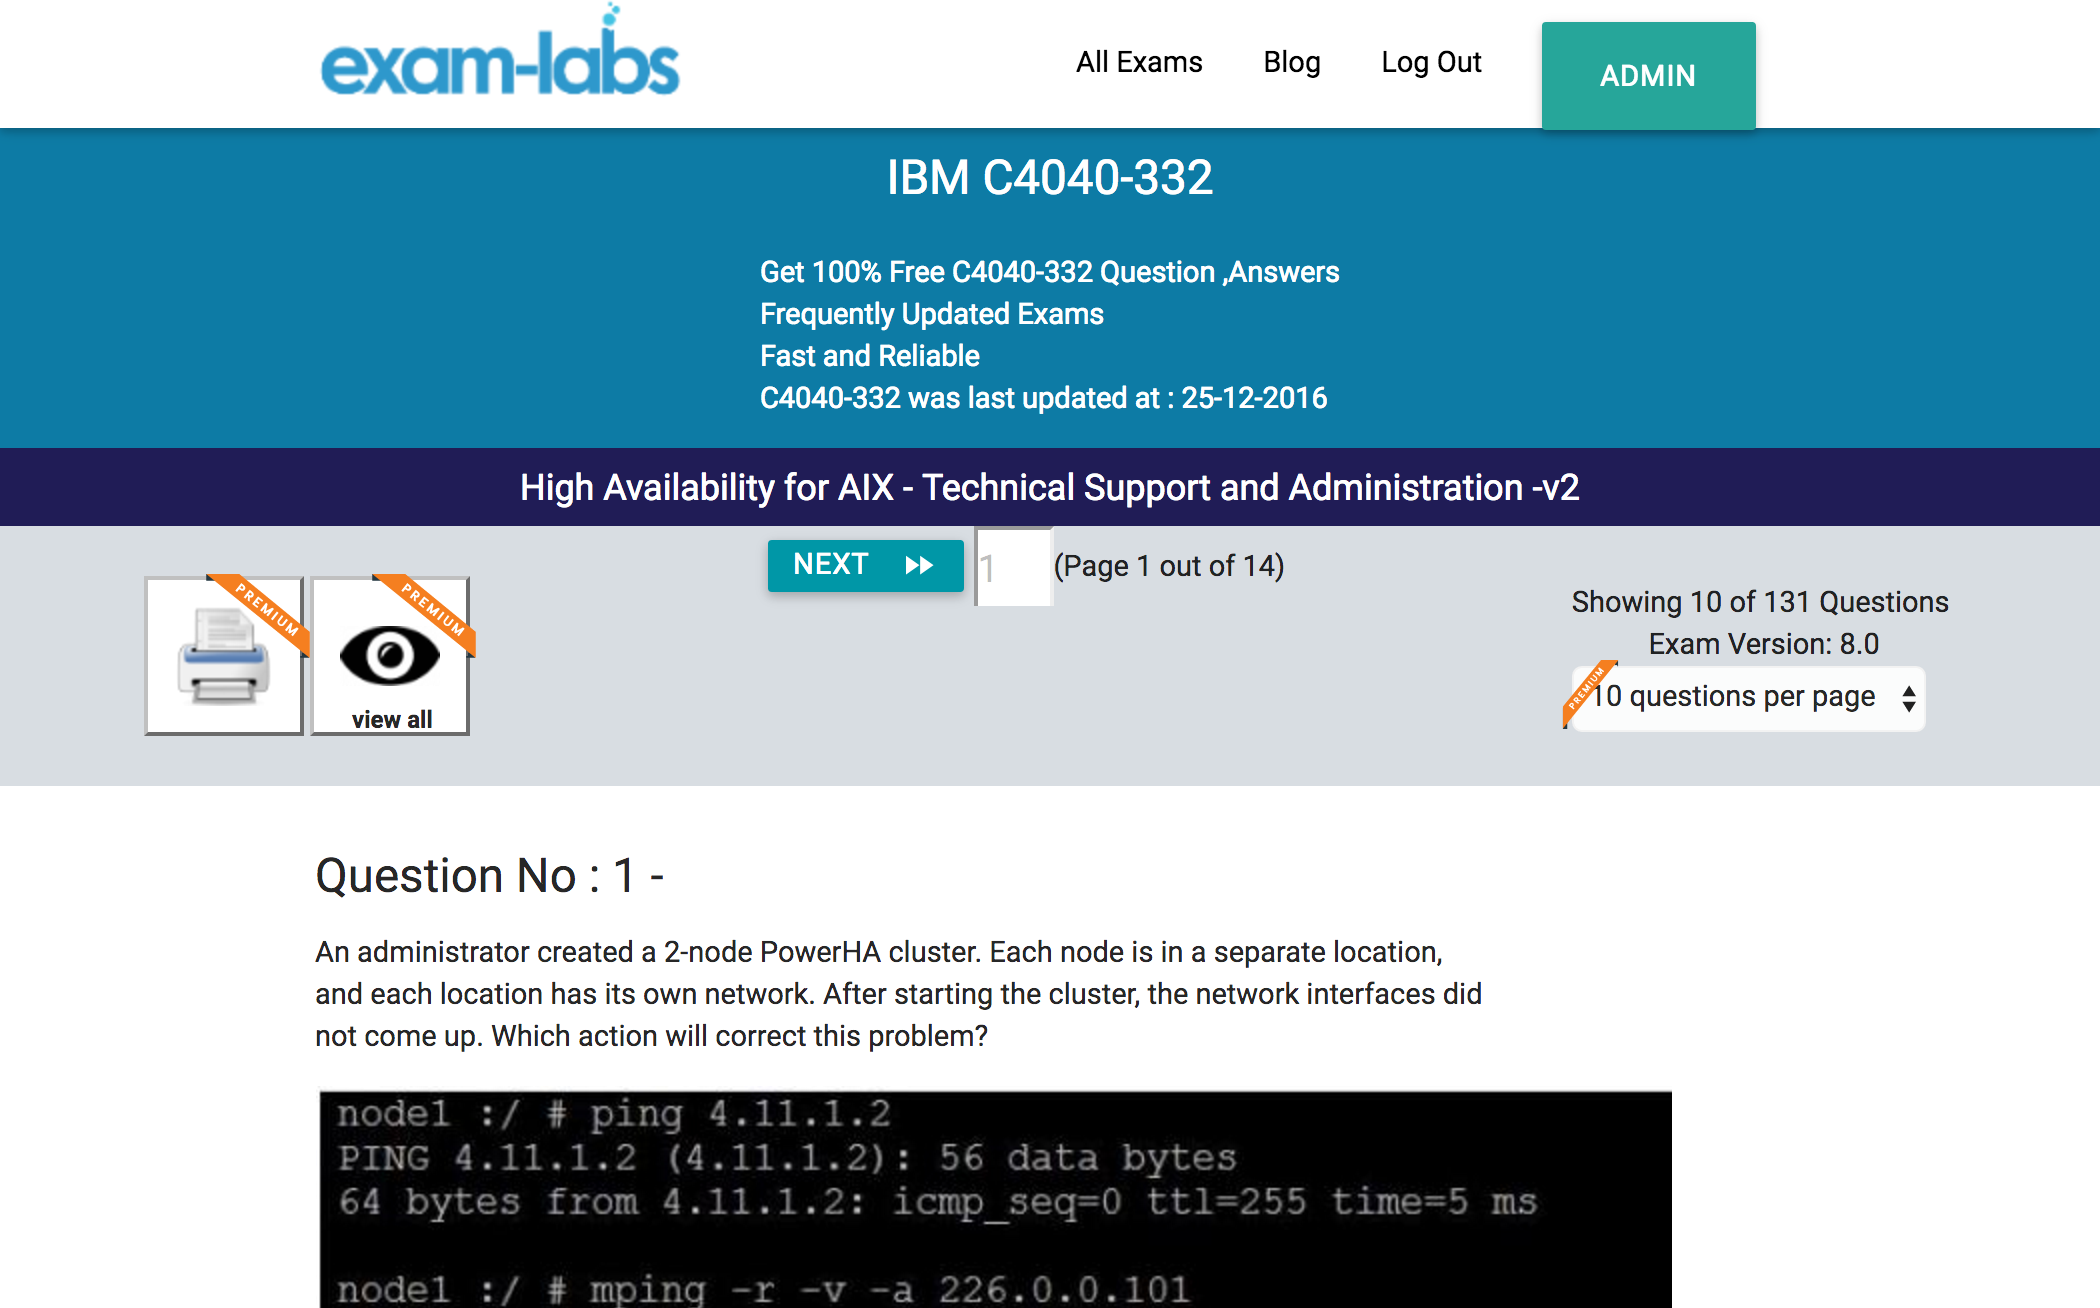 c4040 332 ibm real exam questions 100% exam labs ibm c4040 332 high availability for aix technical support and administration v2 exam